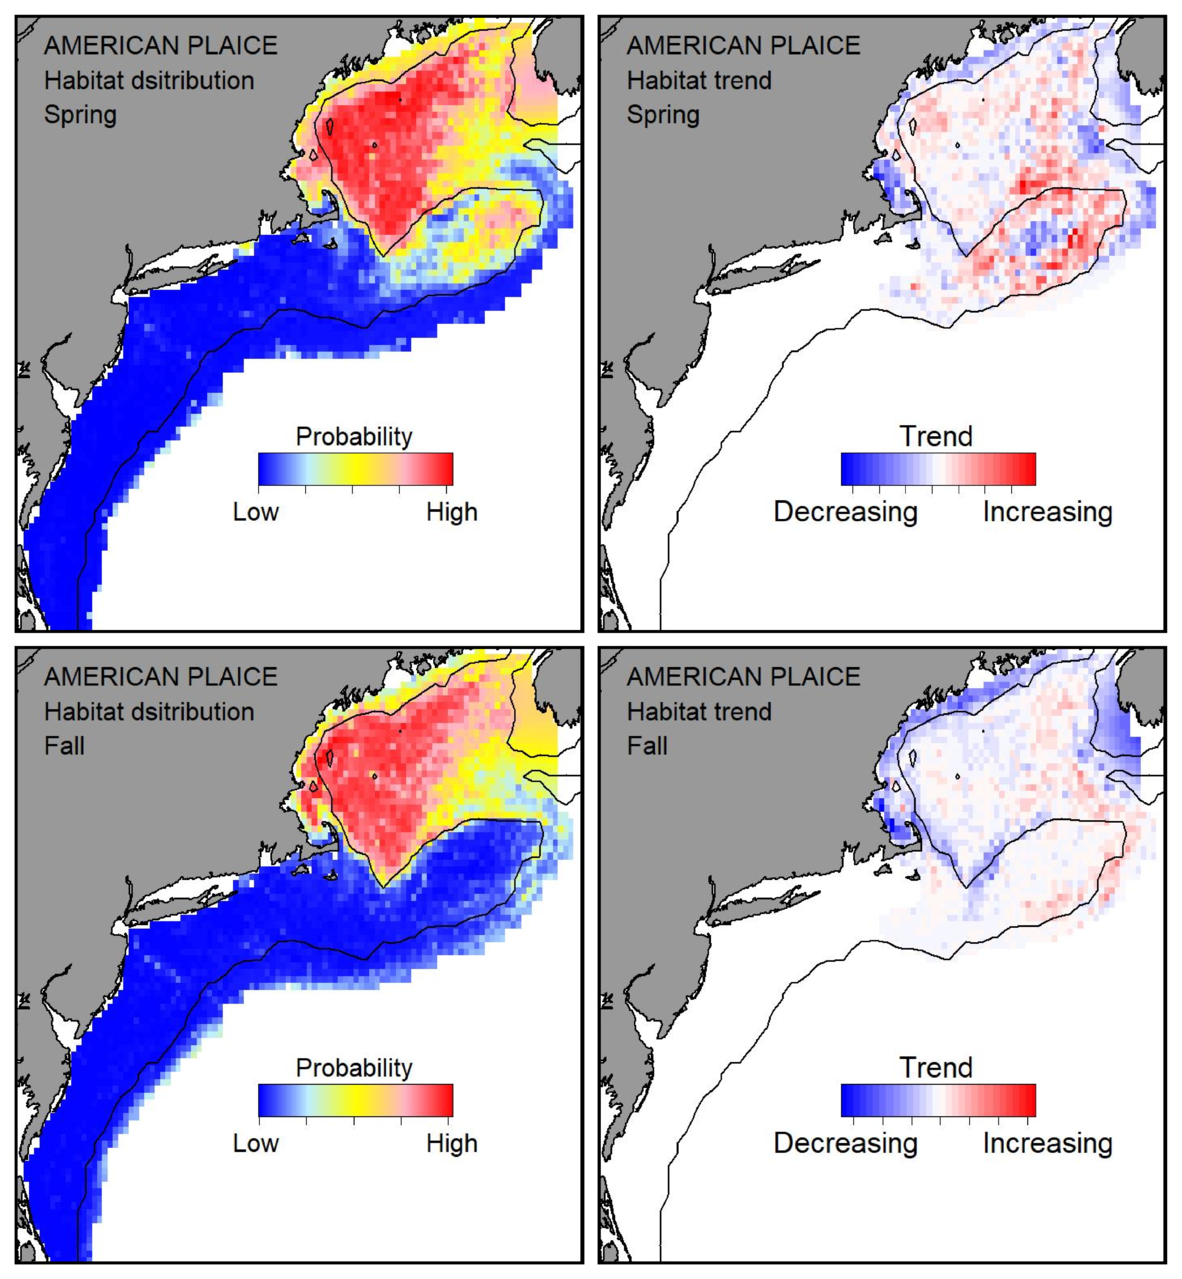 Probable habitat distribution for American plaice showing the highest concentration and increasing trend in the Gulf of Maine during the spring. Bottom row: Probable habitat distribution for American plaice showing the highest concentration and increasing trend in the Gulf of Maine during the fall.